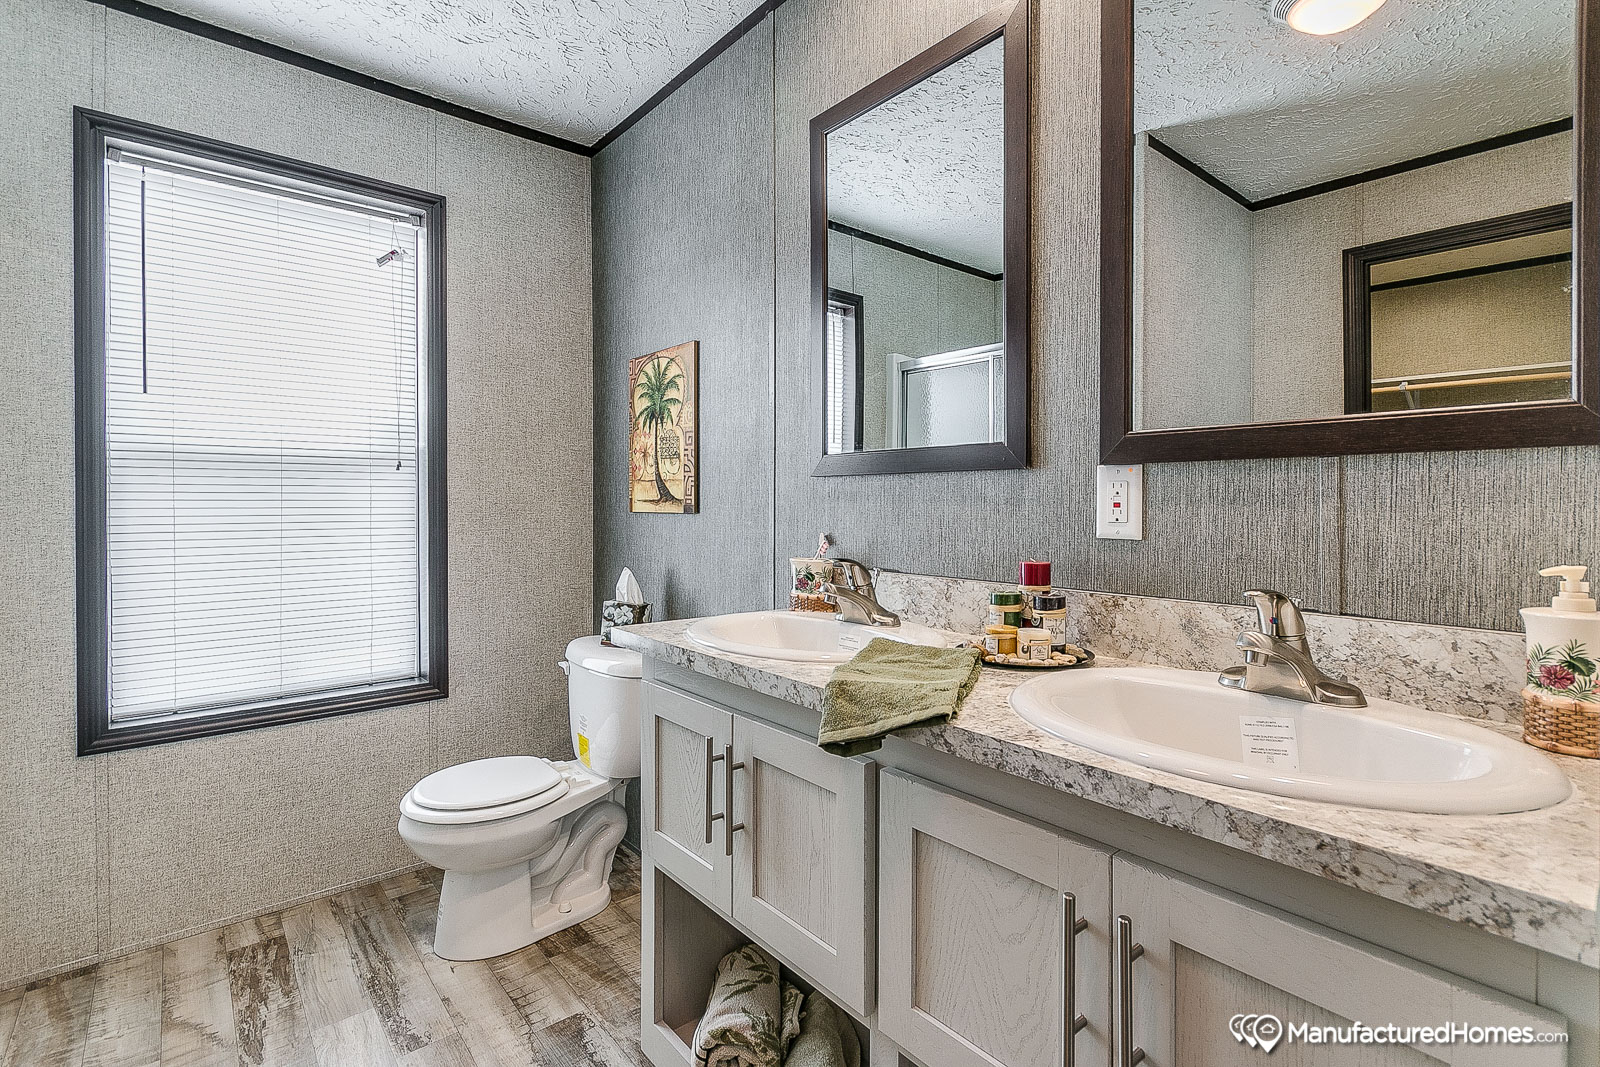 Inspiration SW / The Inspiration 184504 - Bathroom